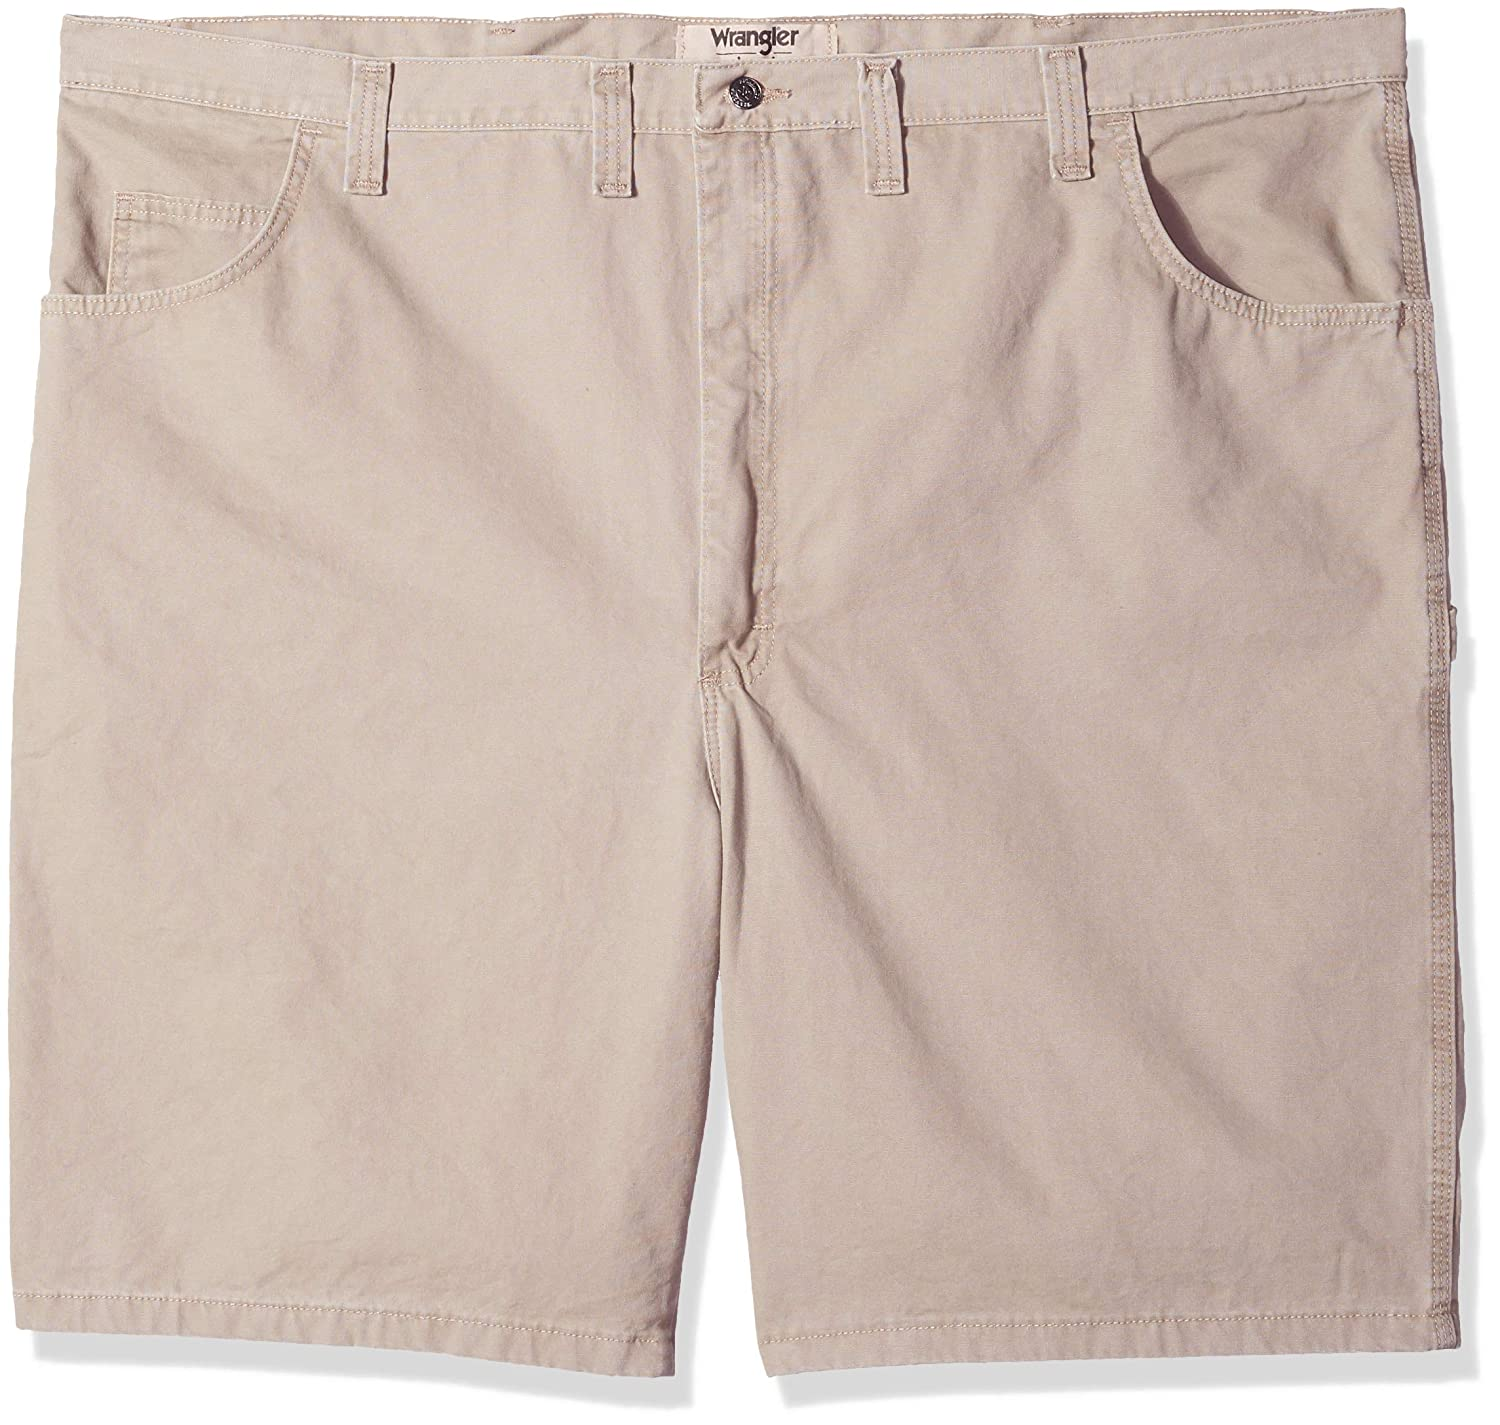 5c5f16e88f Wrangler Authentics Men's Big & Tall Classic Relaxed Fit Carpenter Short at  Amazon Men's Clothing store: